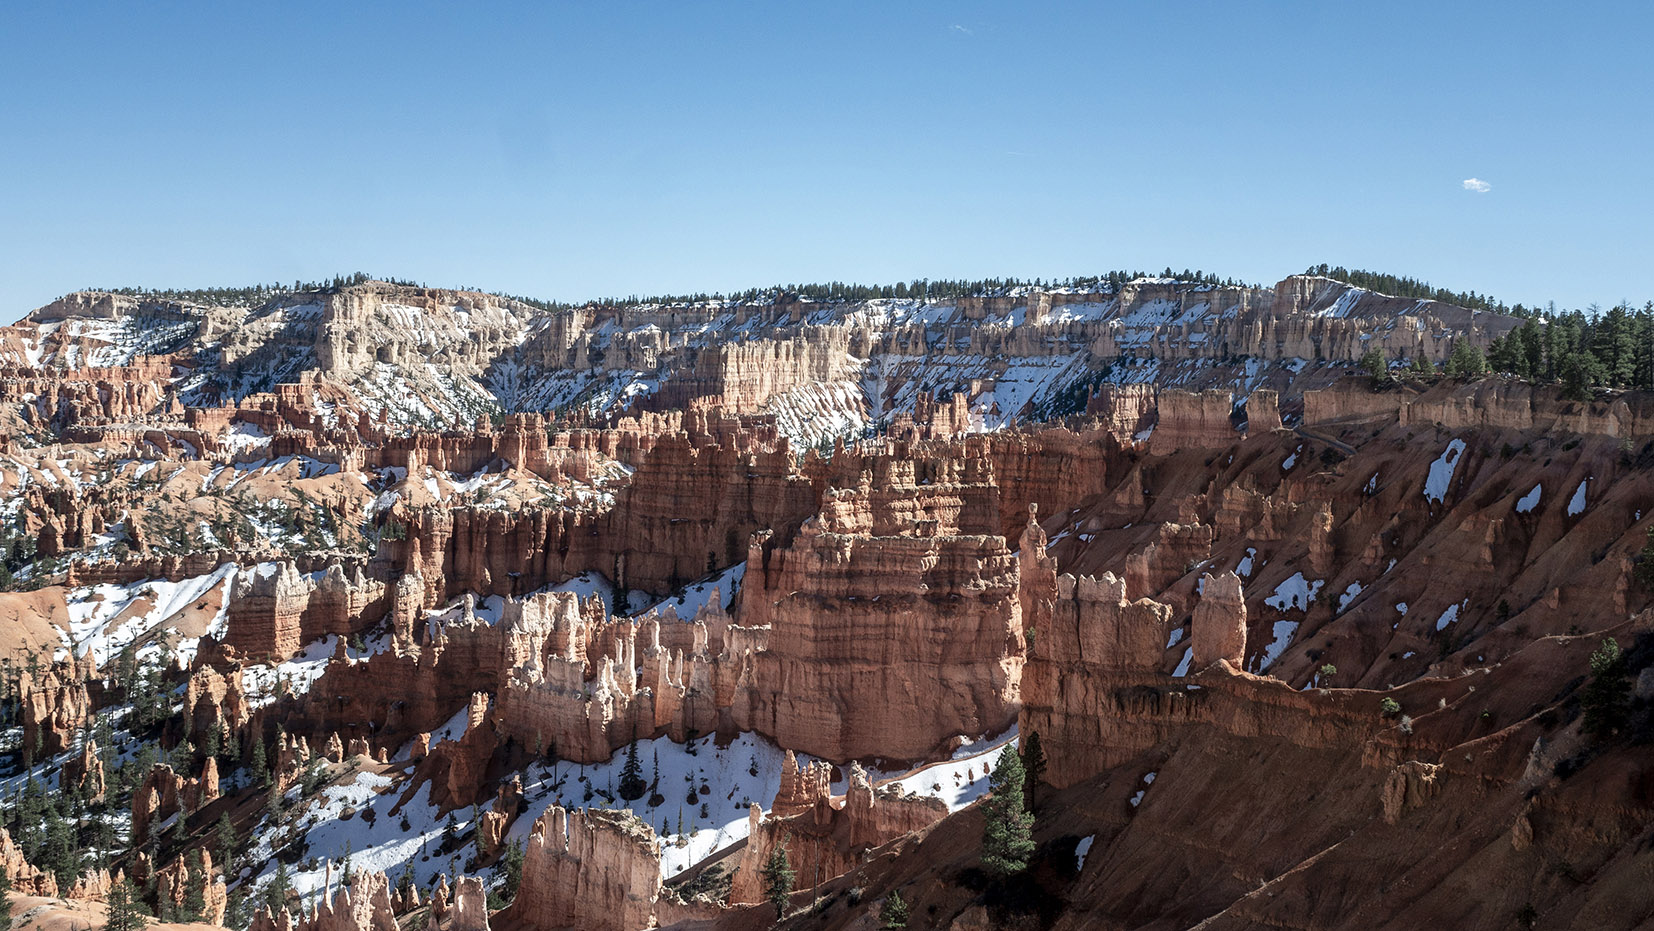 Parc National USA roches ciel bleu sapins neige Bryce Canyon